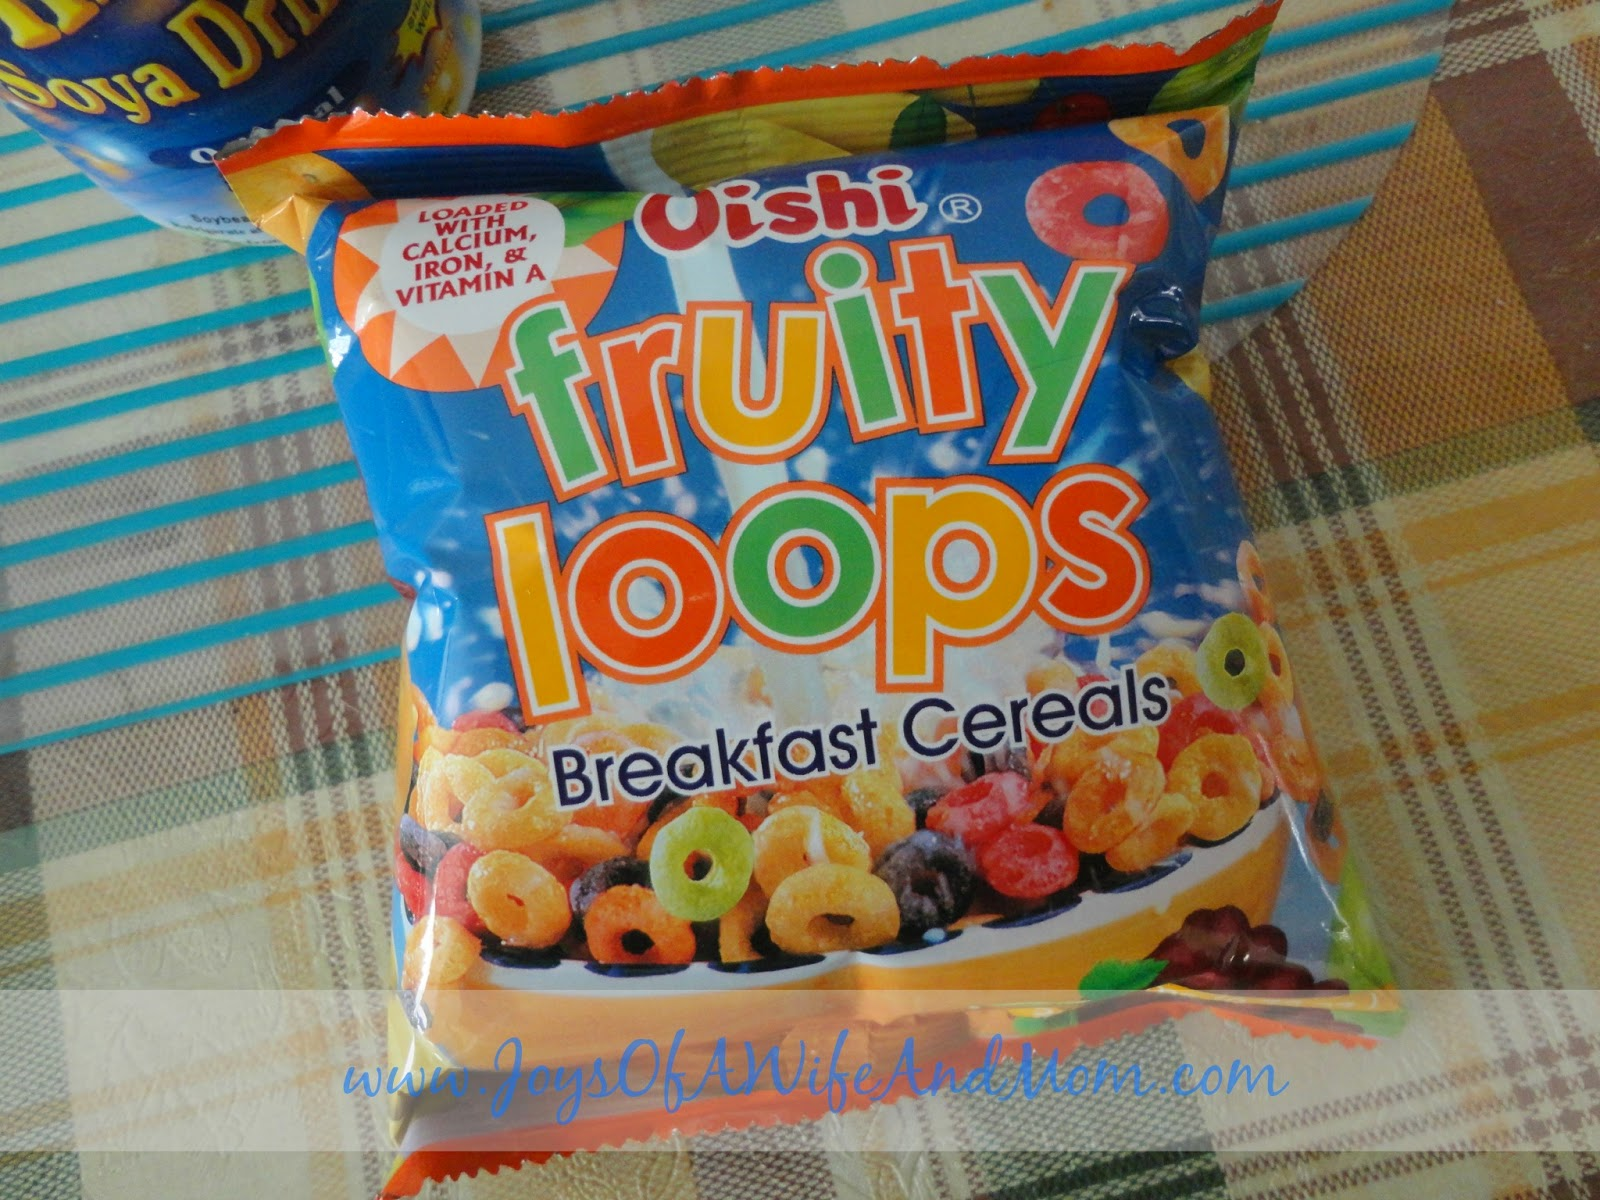 Oishi Fruity Loops Breakfast Cereals